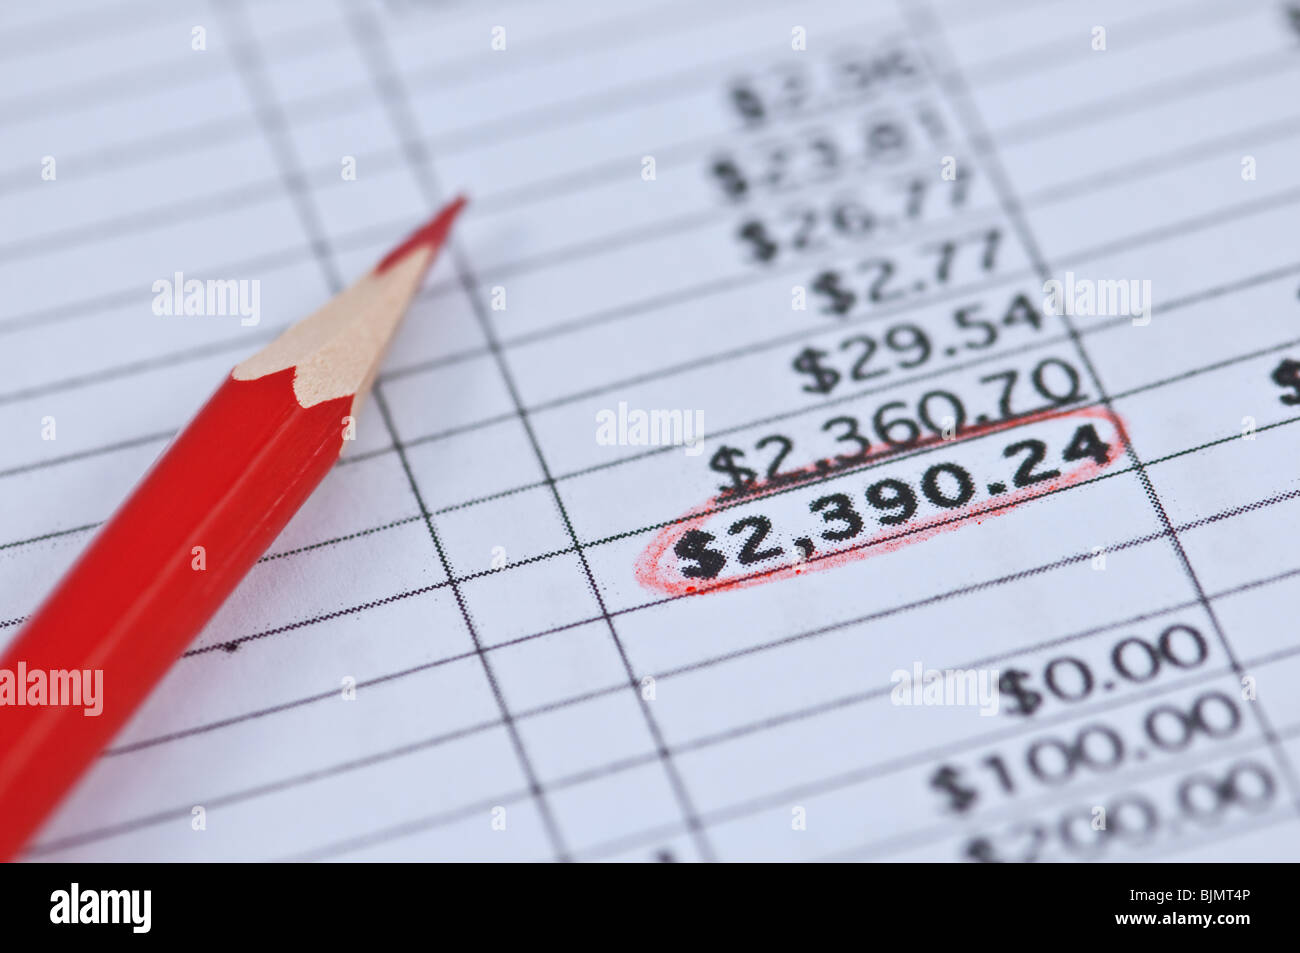 red pencil and financial document - Stock Image